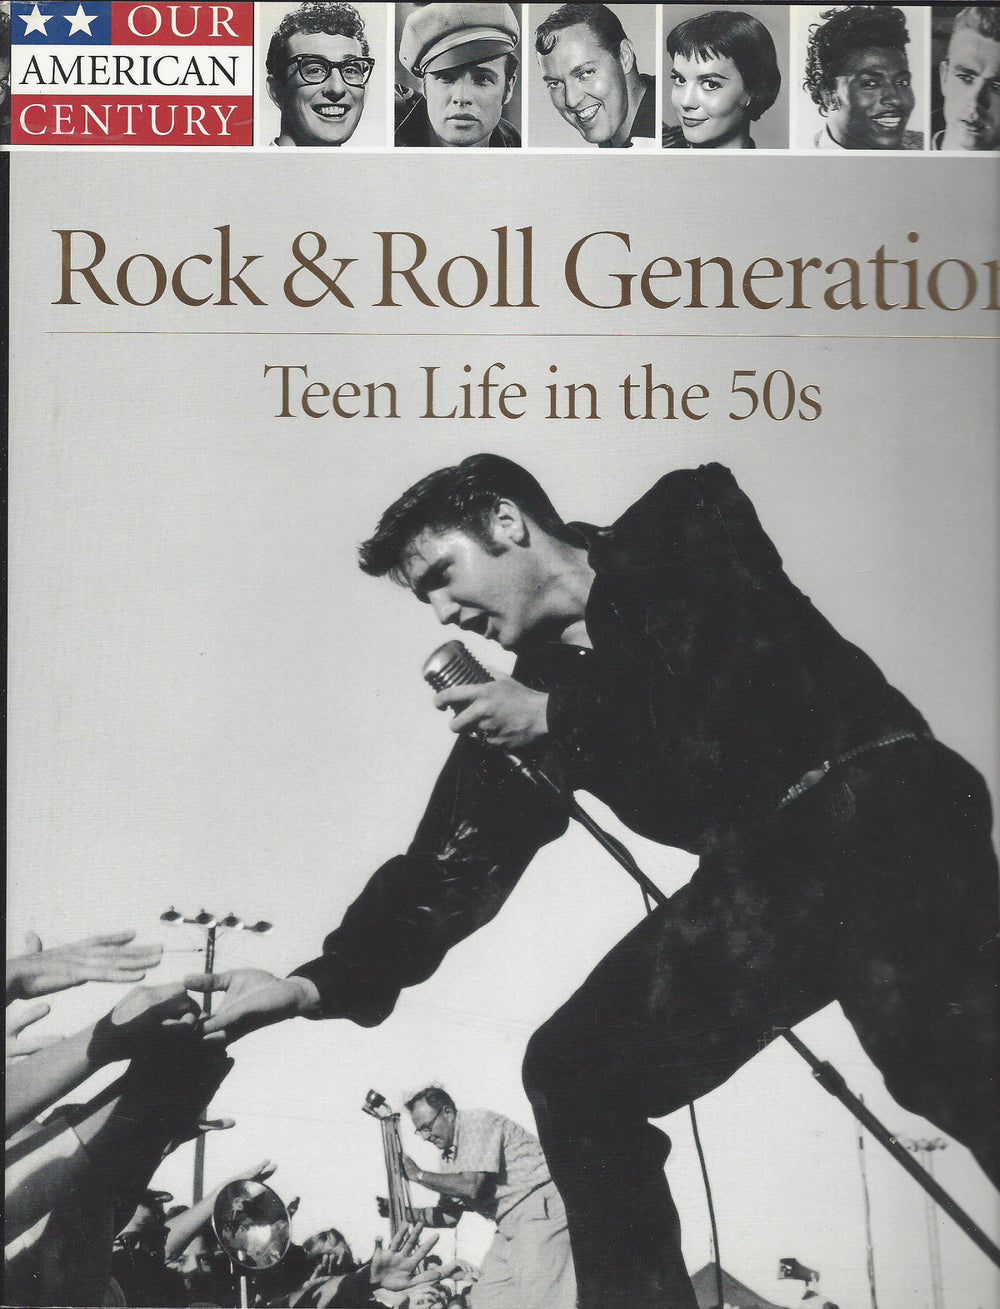 Time-Life: Our American Century-Rock & Roll Generation-Teen Life in the 50s